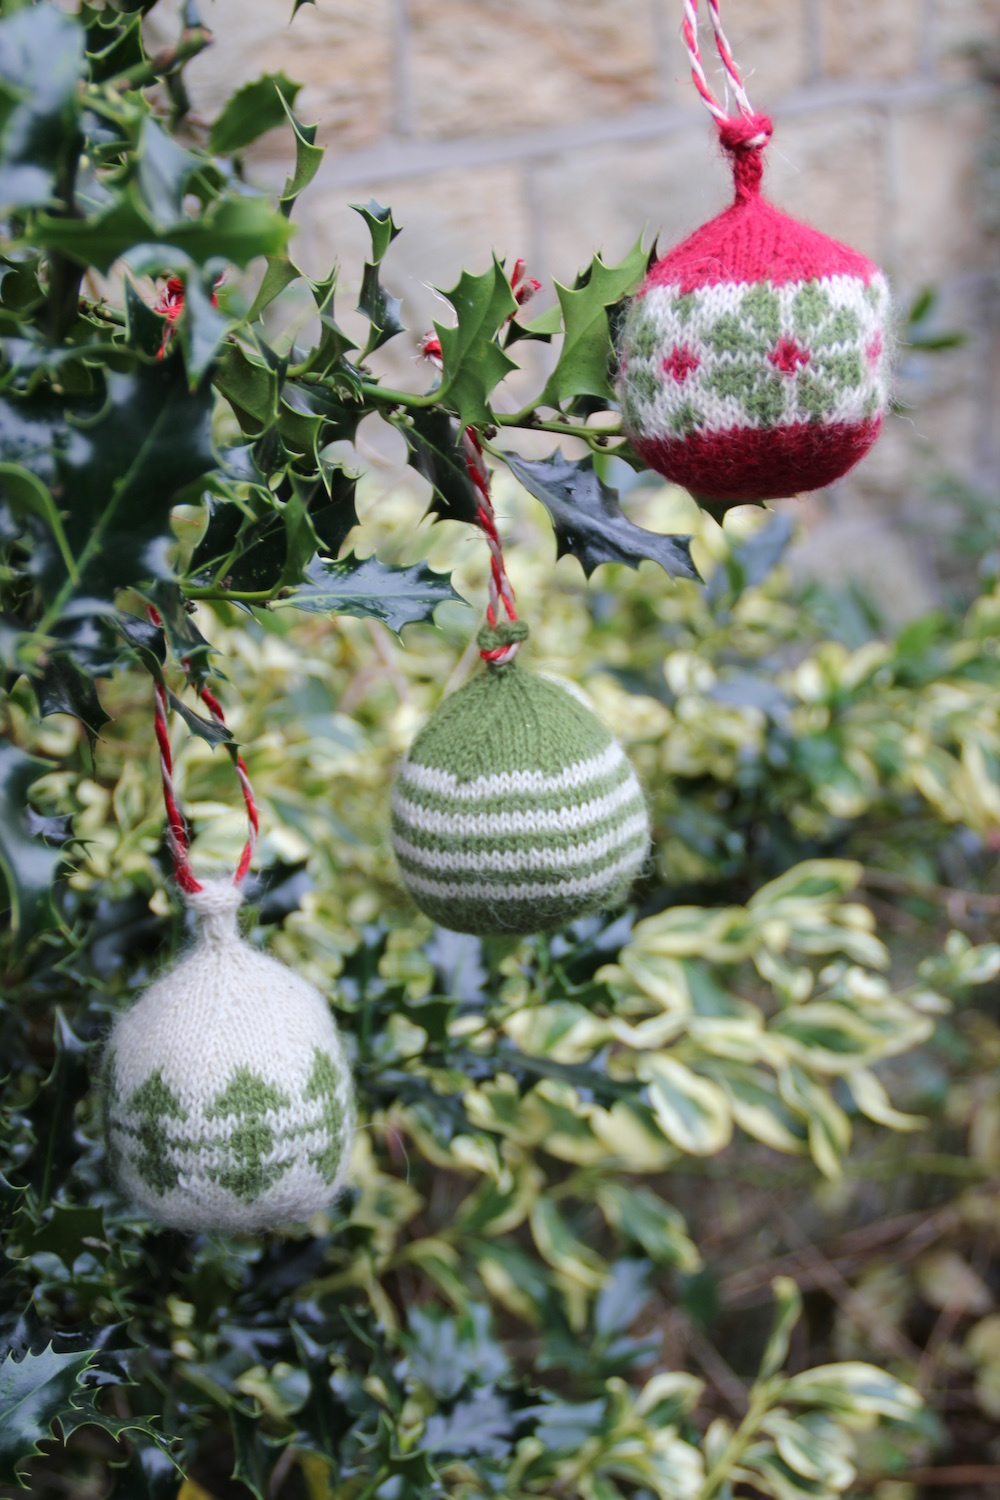 Dingle Baubles by Jo Spreckley  Yarn: Baa Ram Ewe Titus (70% Wool, 30% Alpaca) 320m per 100g hank Kit includes: - Pattern leaflet - Mini hanks of Titus in colours Chevin, White Rose and Wesley Bob - Toy stuffing - Tapestry needle for sewing up You will also need: - 2.25 or 2.5mm DPNs